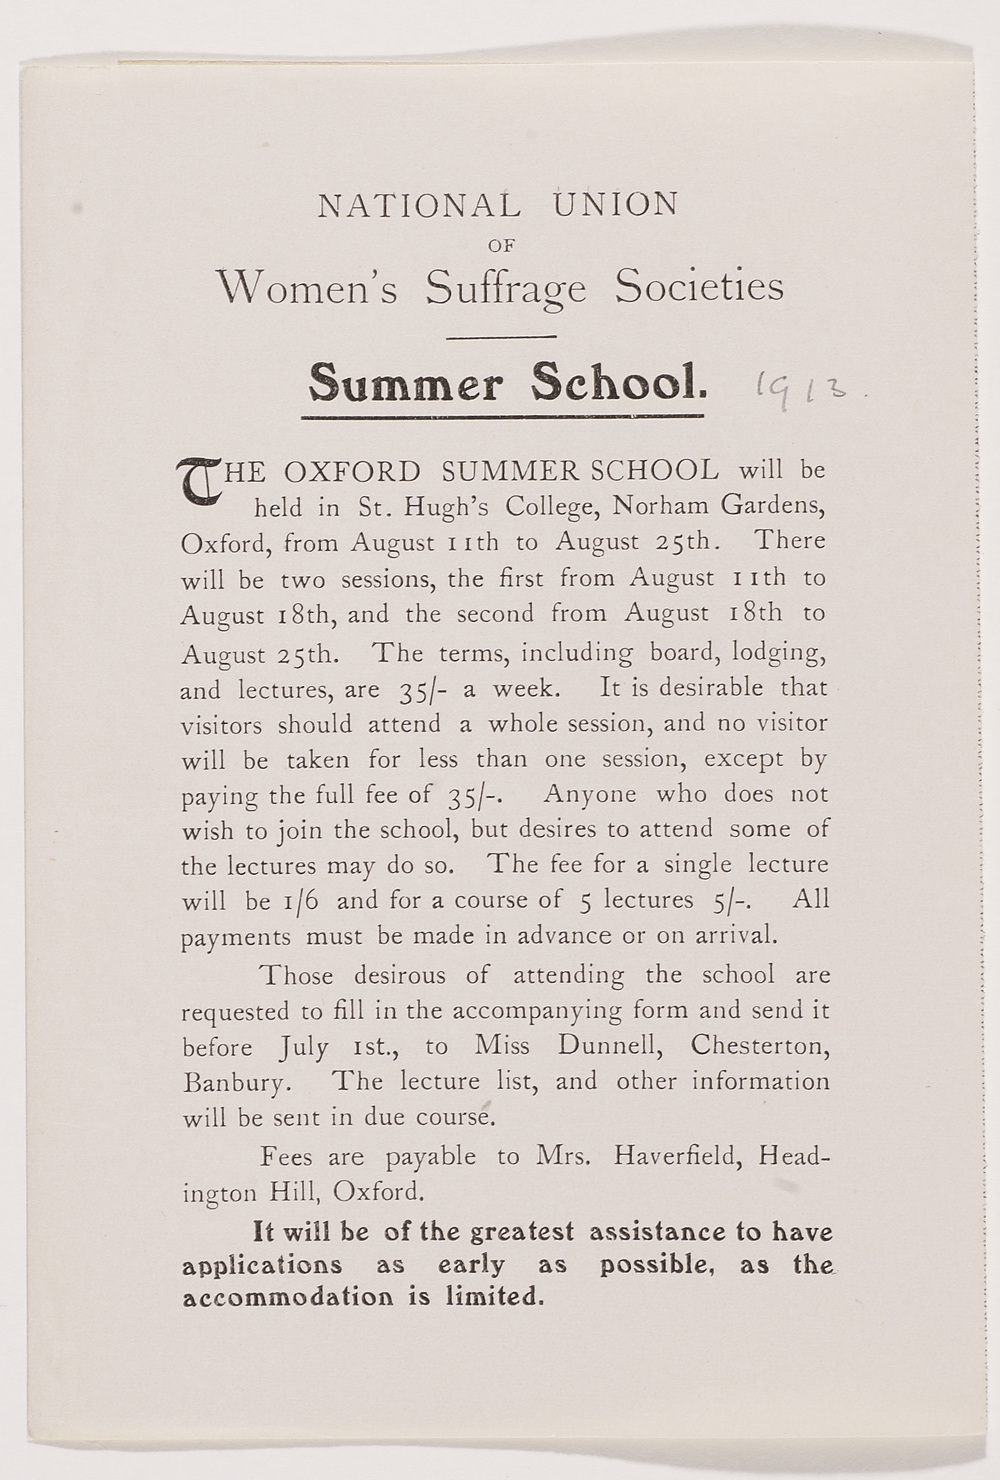 Leaflet, National Union of Women's Suffrage Societies (NUWSS) Summer School (1913)